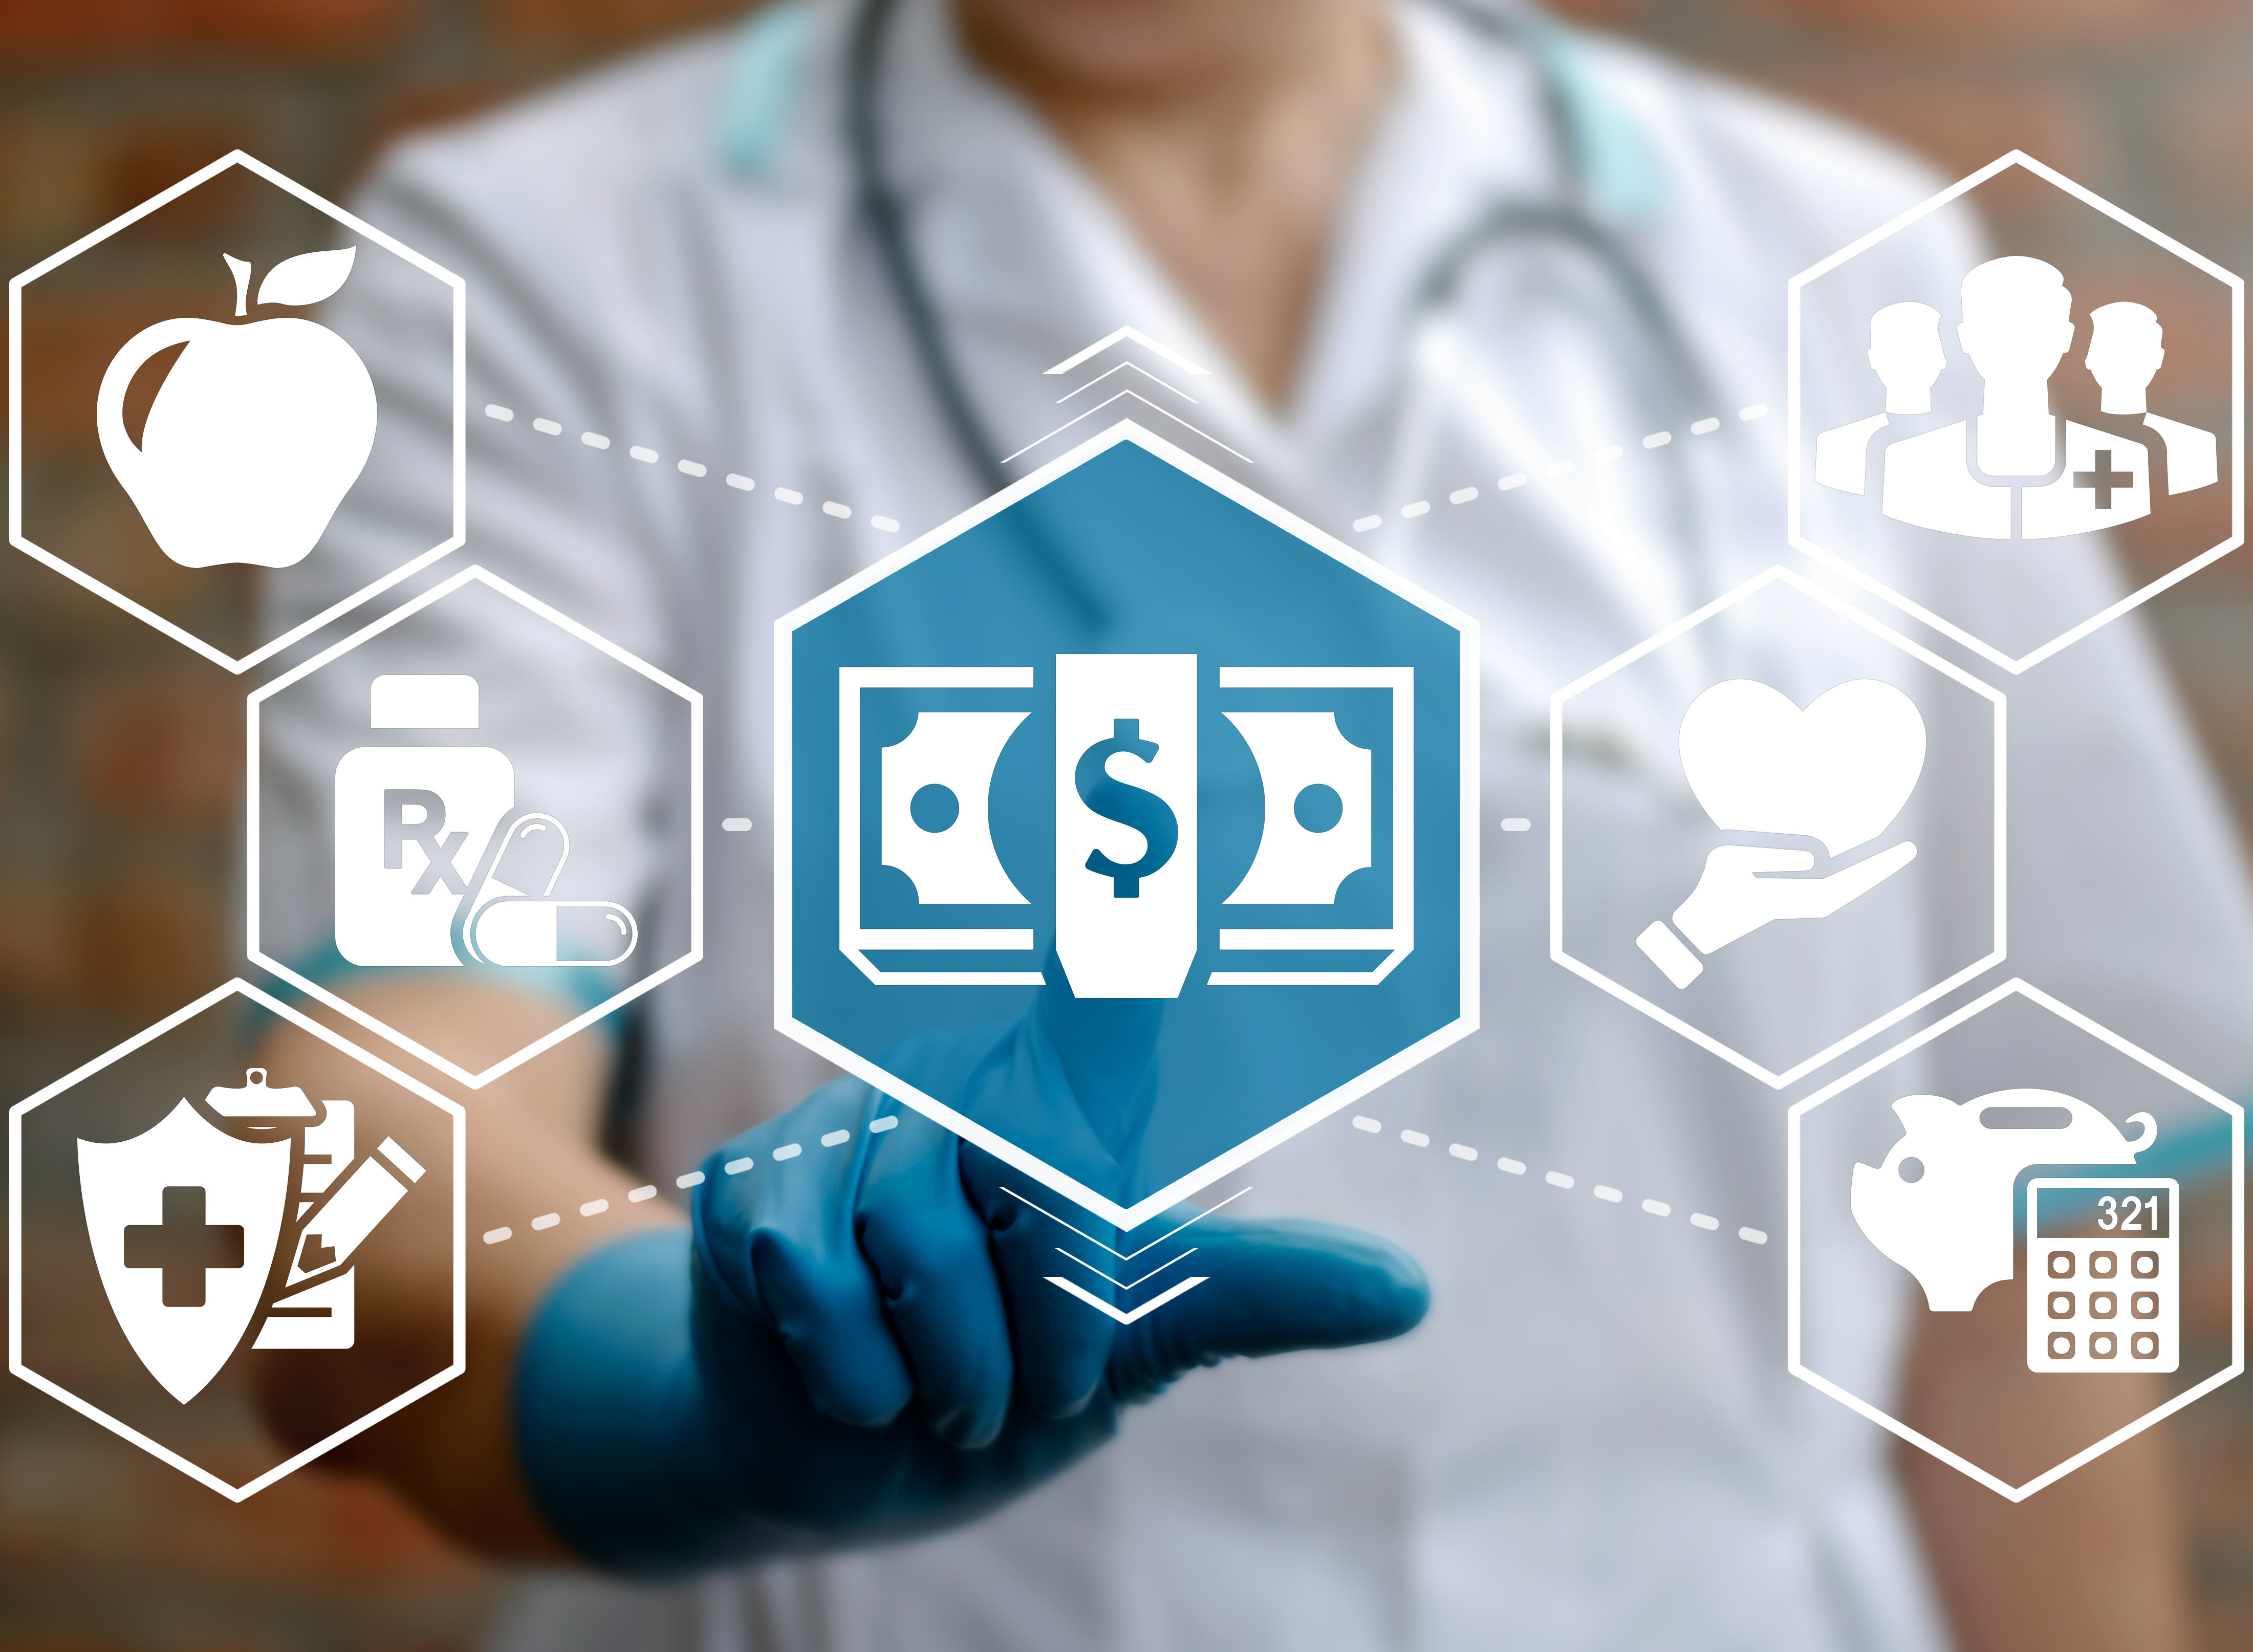 More Than Just a Number: Assessing The Value of Innovative Treatments